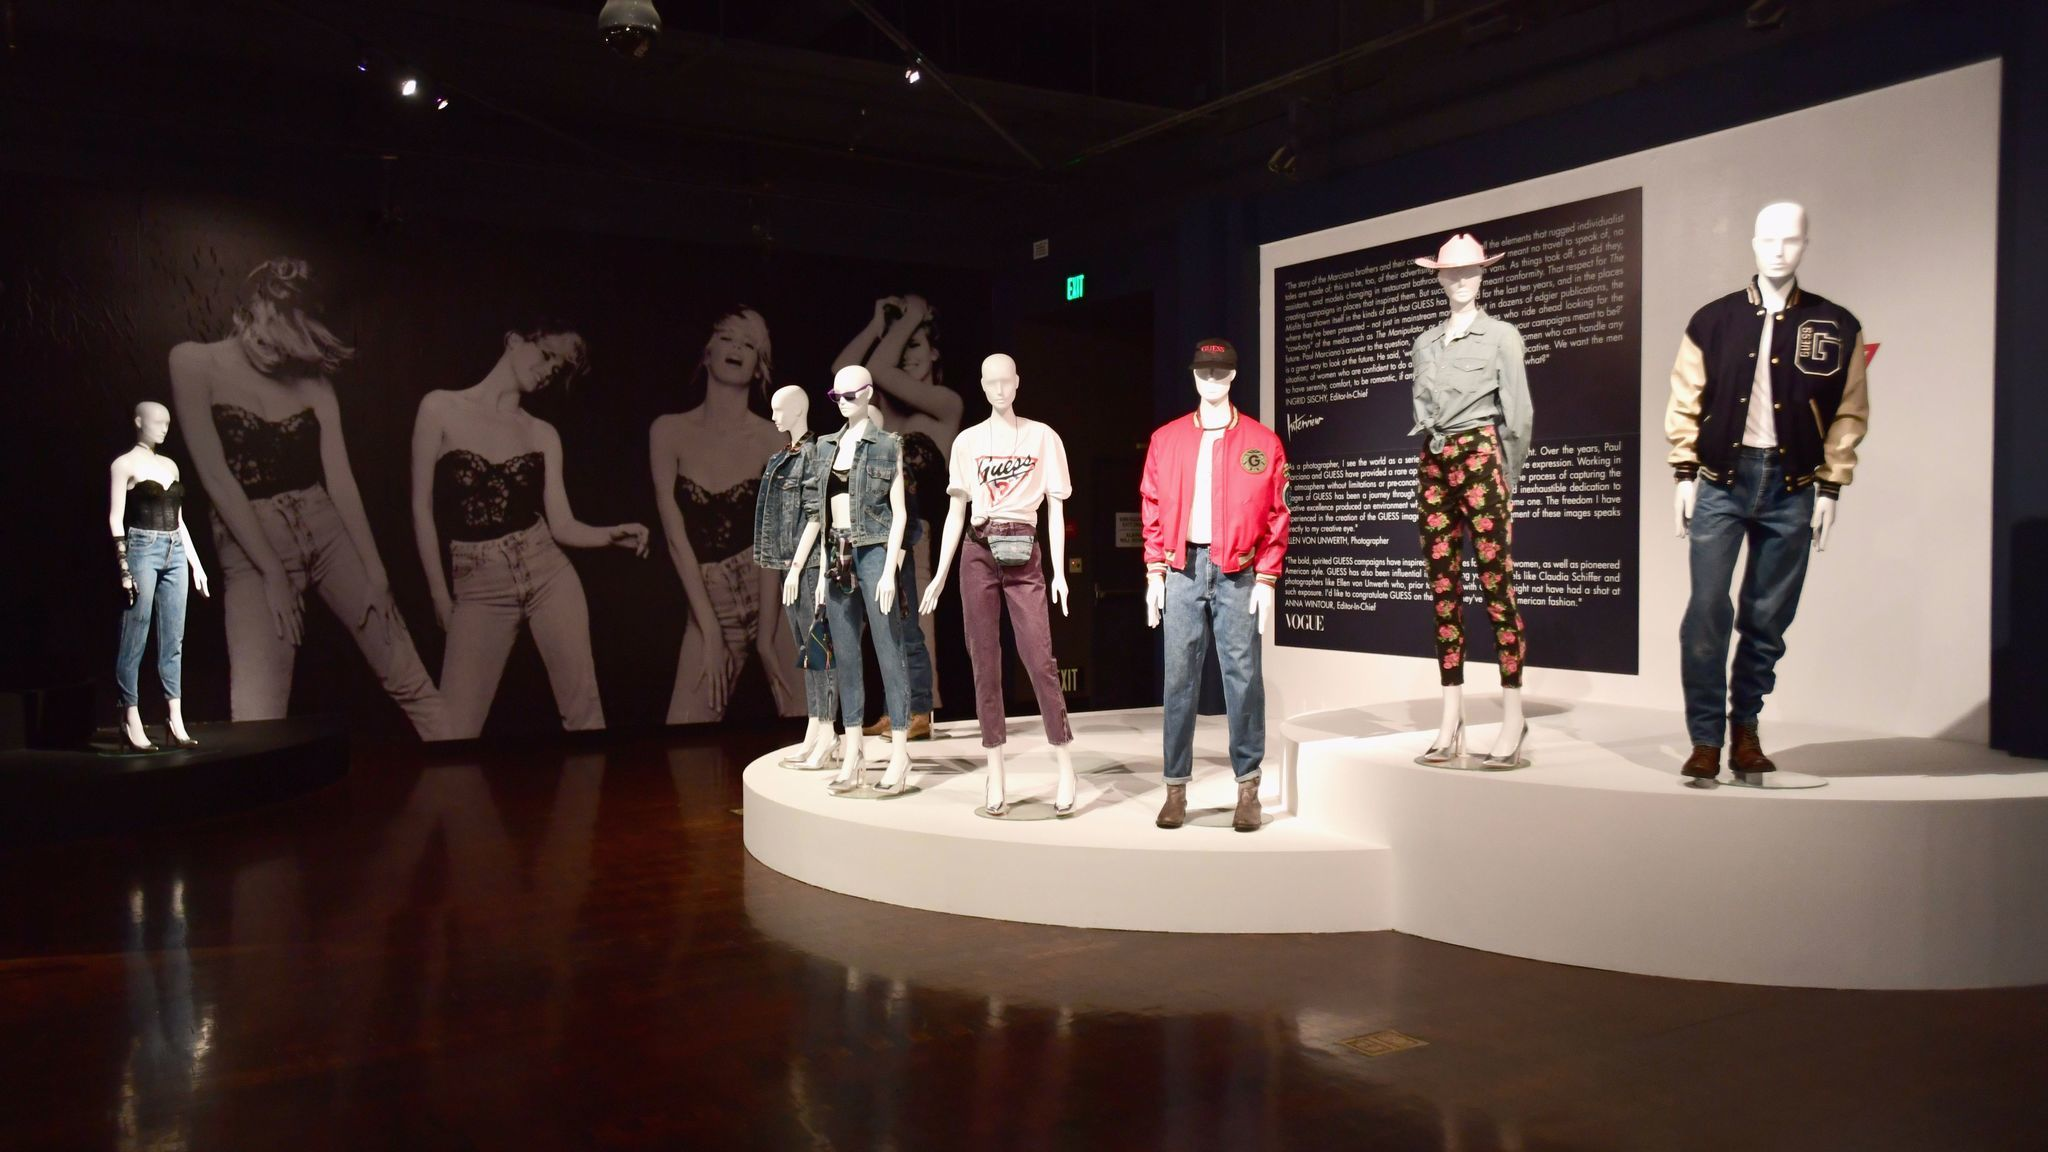 The FIDM Museum is honoring the Guess brand with an exhibit in downtown L.A.